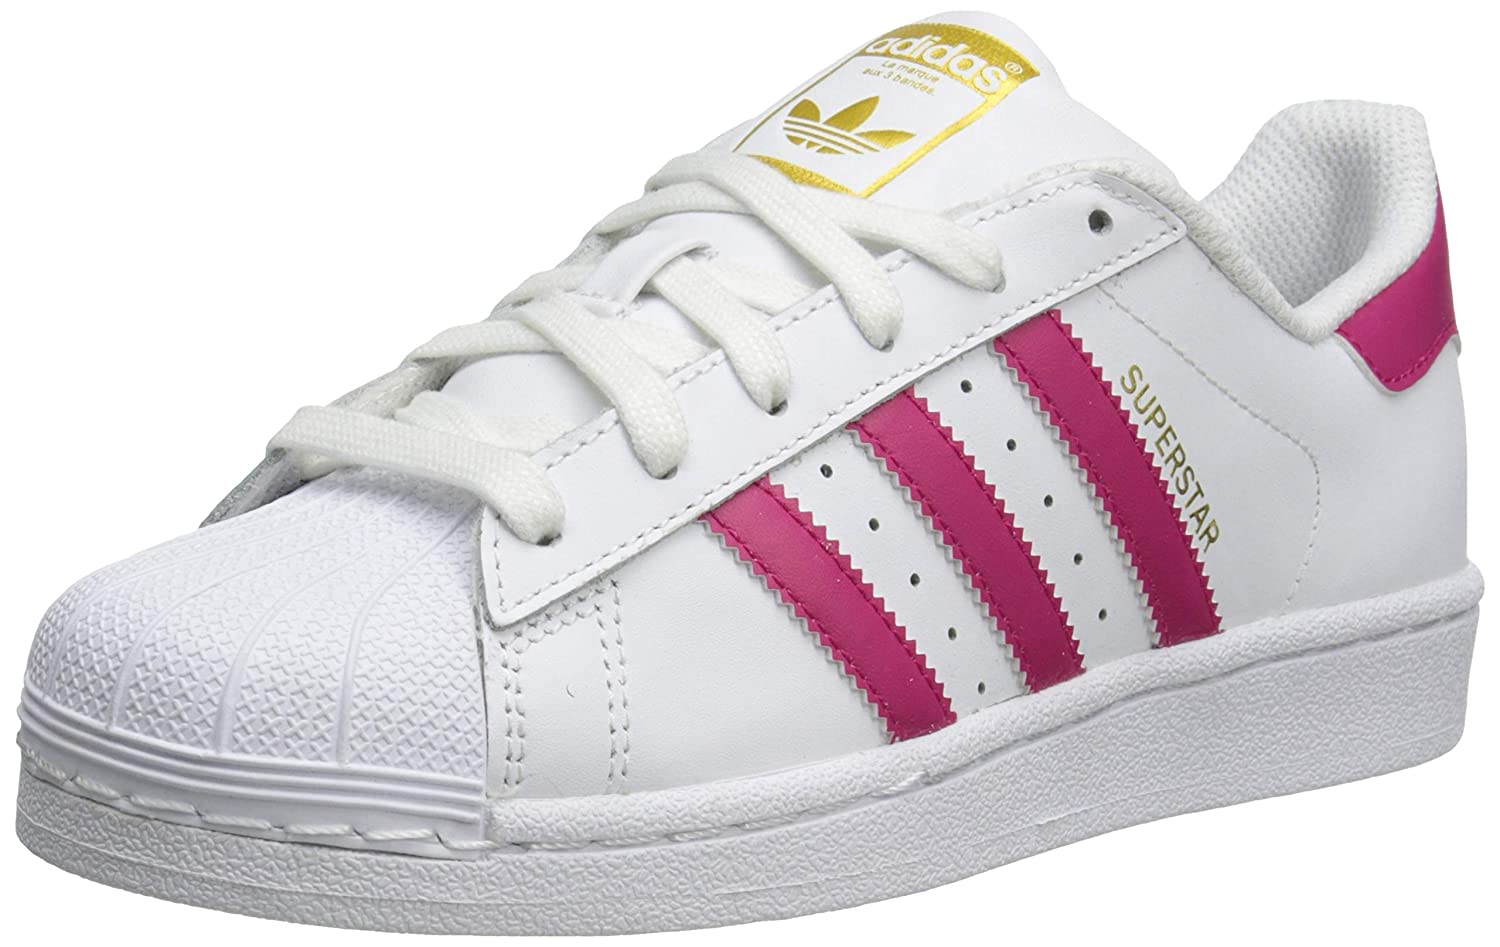 separation shoes ab879 be455 Adidas Superstar Foundation J Casual Basketball-Inspired Low ...